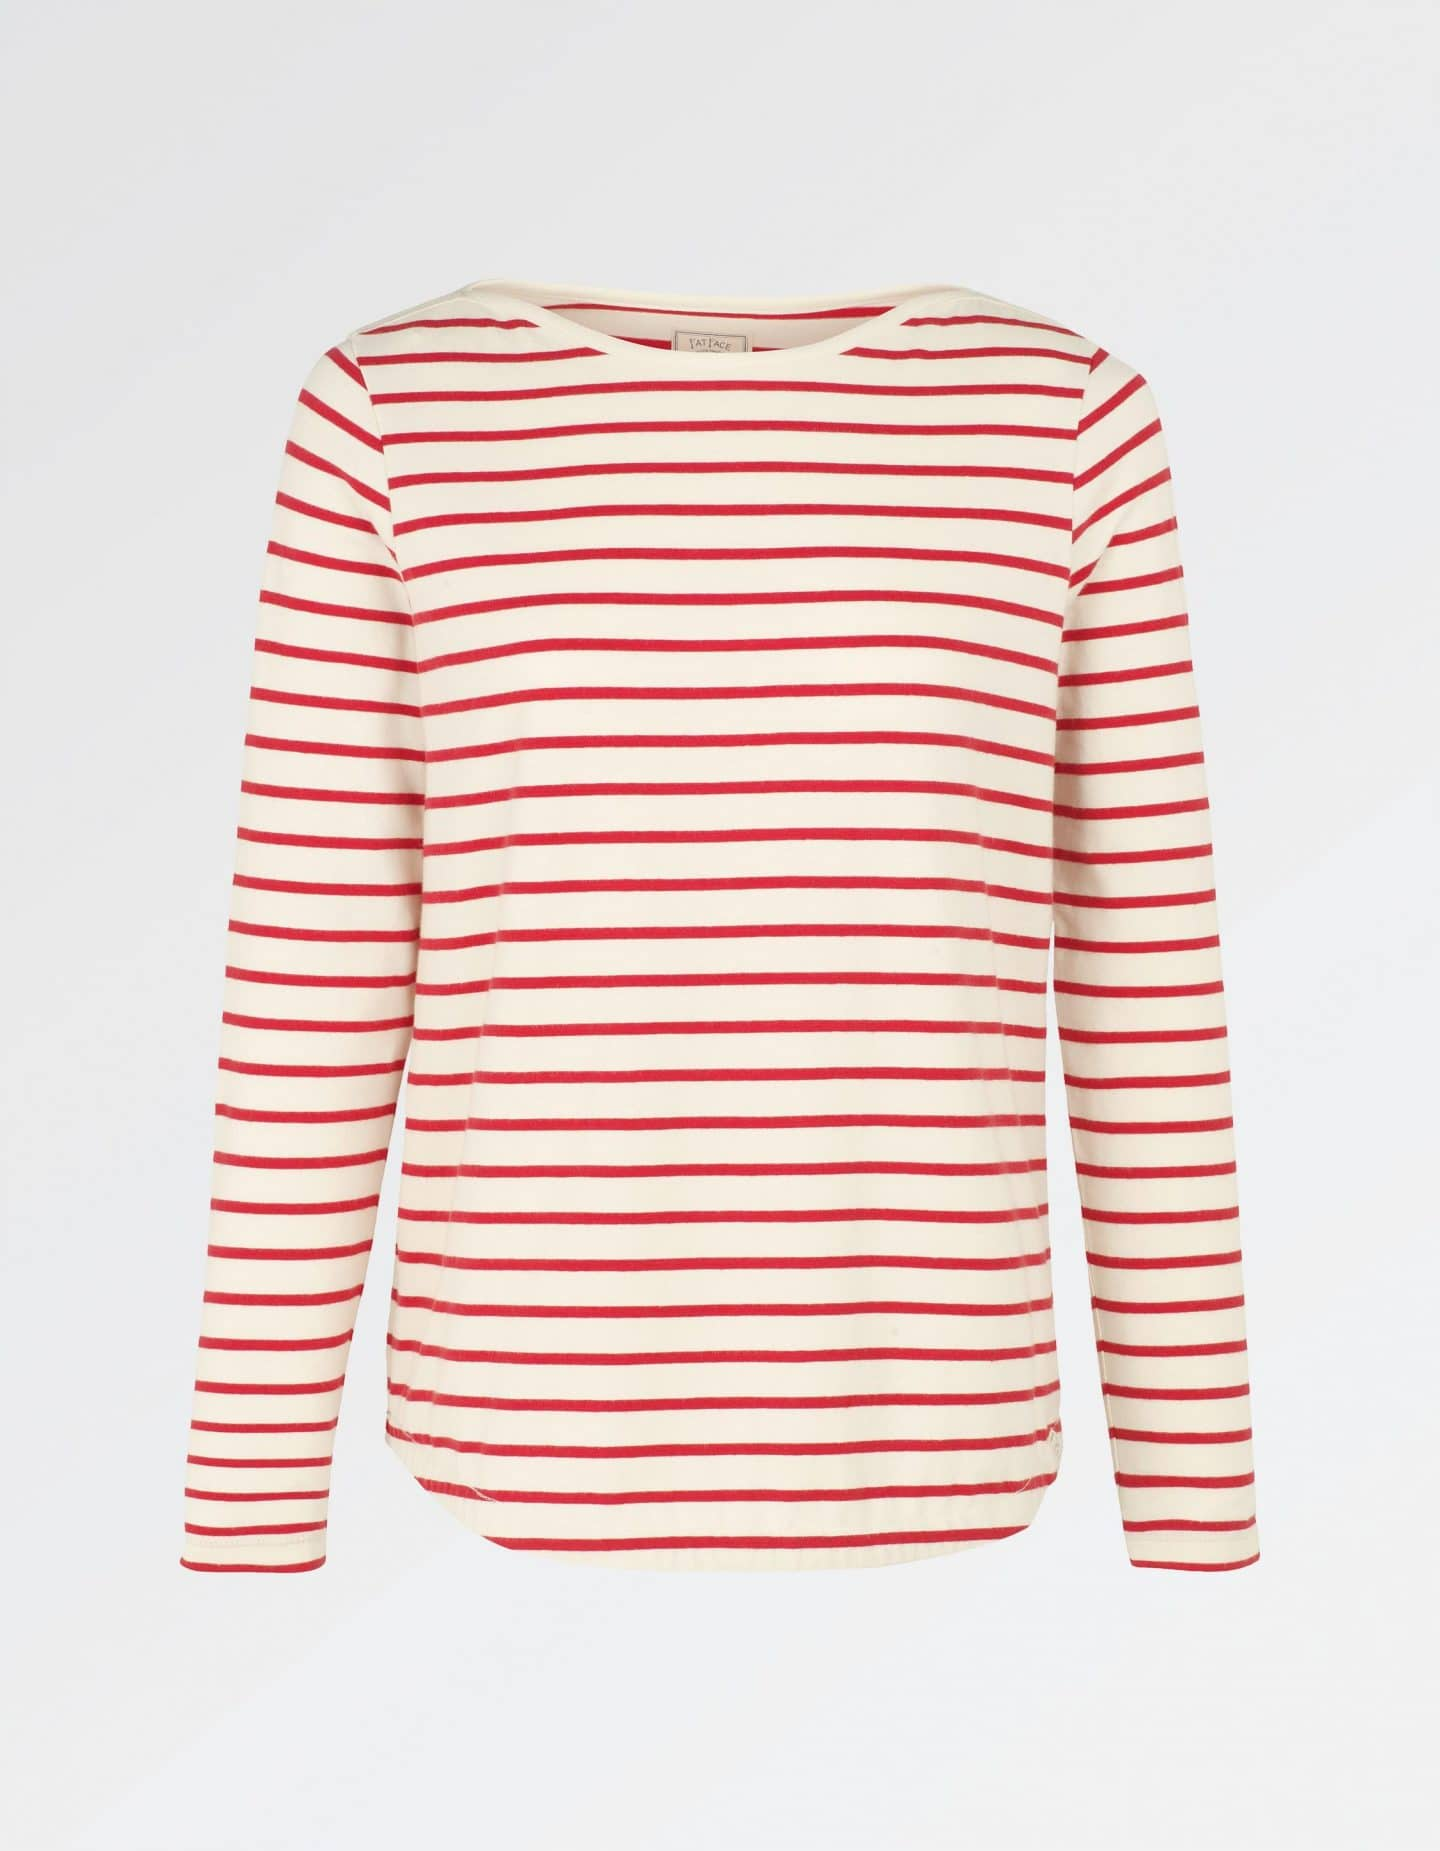 Fat Face Organic Cotton Breton Striped Top in Tomato